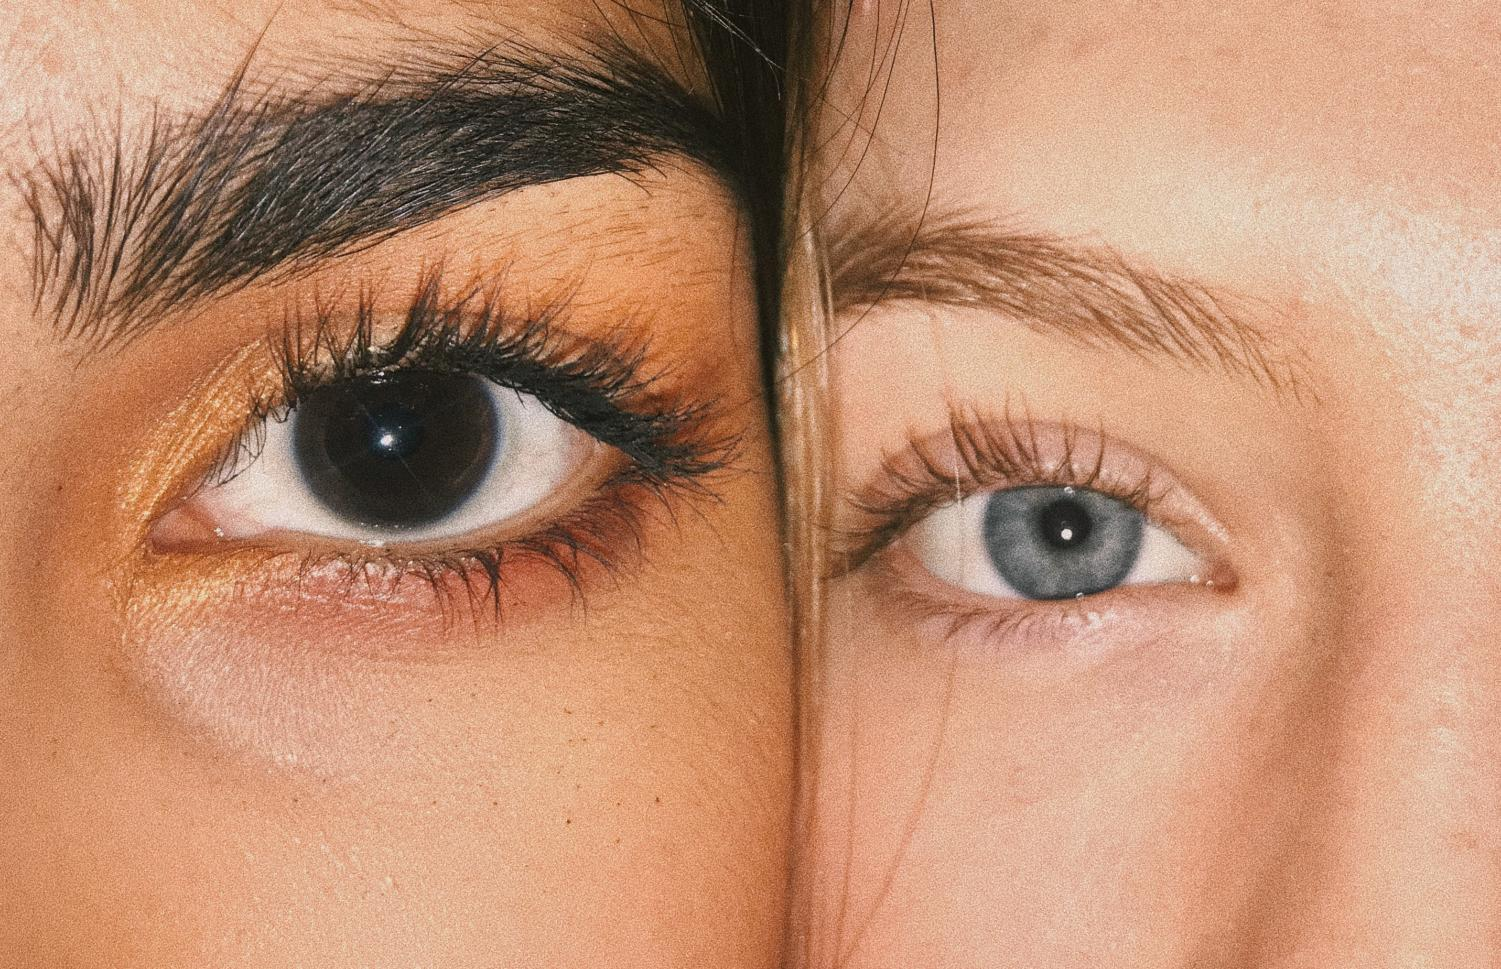 Middle Eastern junior Parmida Mahdavi and Caucasian junior Maizie Daye pose next to each other. Though they have different skin and eye color, they see the same world.